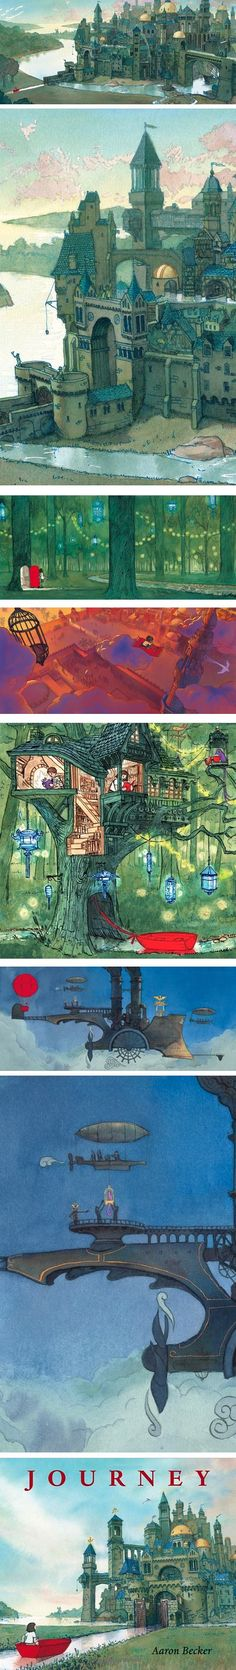 "The debut children's book ""Journey"", by illustrator Aaron Becker http://www.storybreathing.com/journey/ In this wordless story, a young girl escapes the confines of her home life to a magical world of imagination, in which she can determine her destiny."